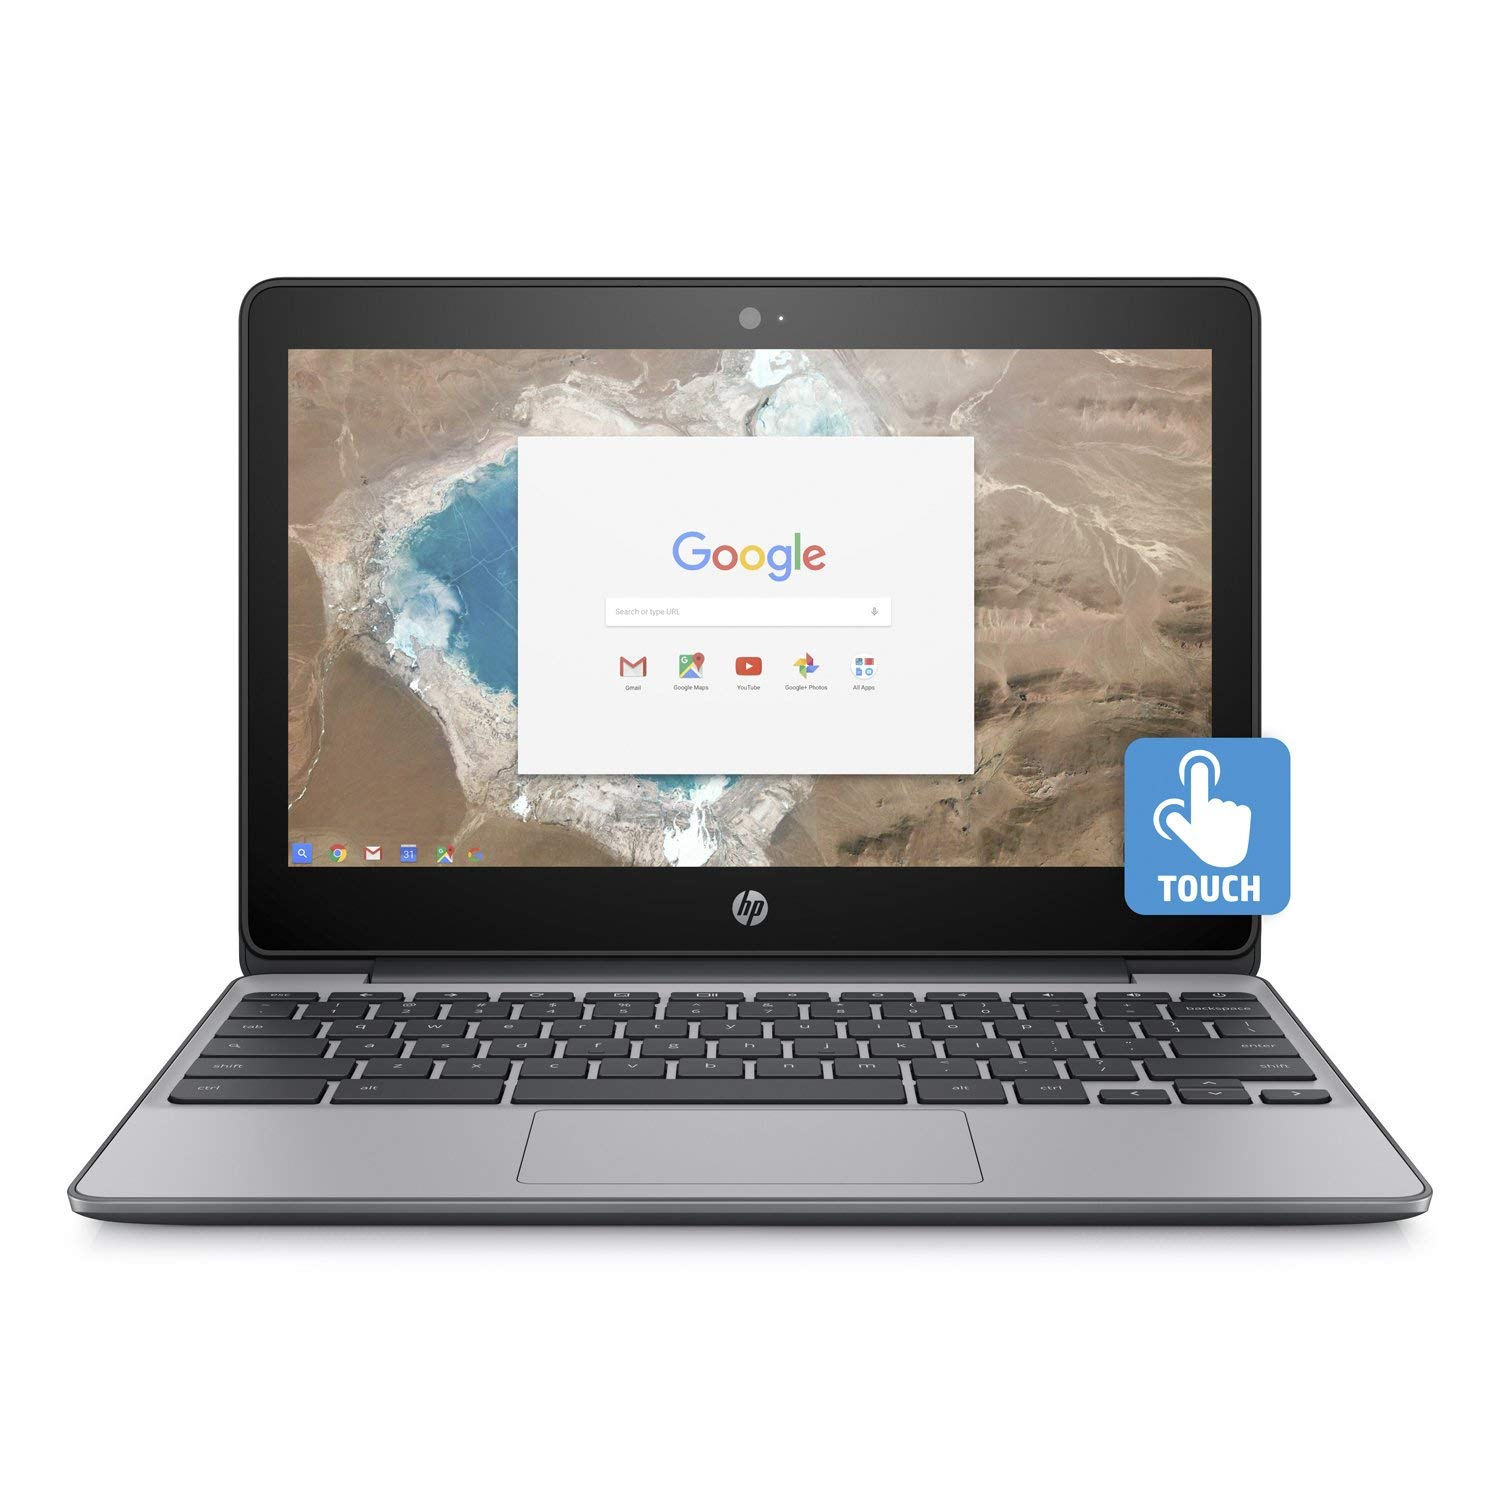 "HP Chromebook 11-v032nr 11.6"" Touchscreen Laptop N3060 4GB 16GB ChromeOS Refurb"